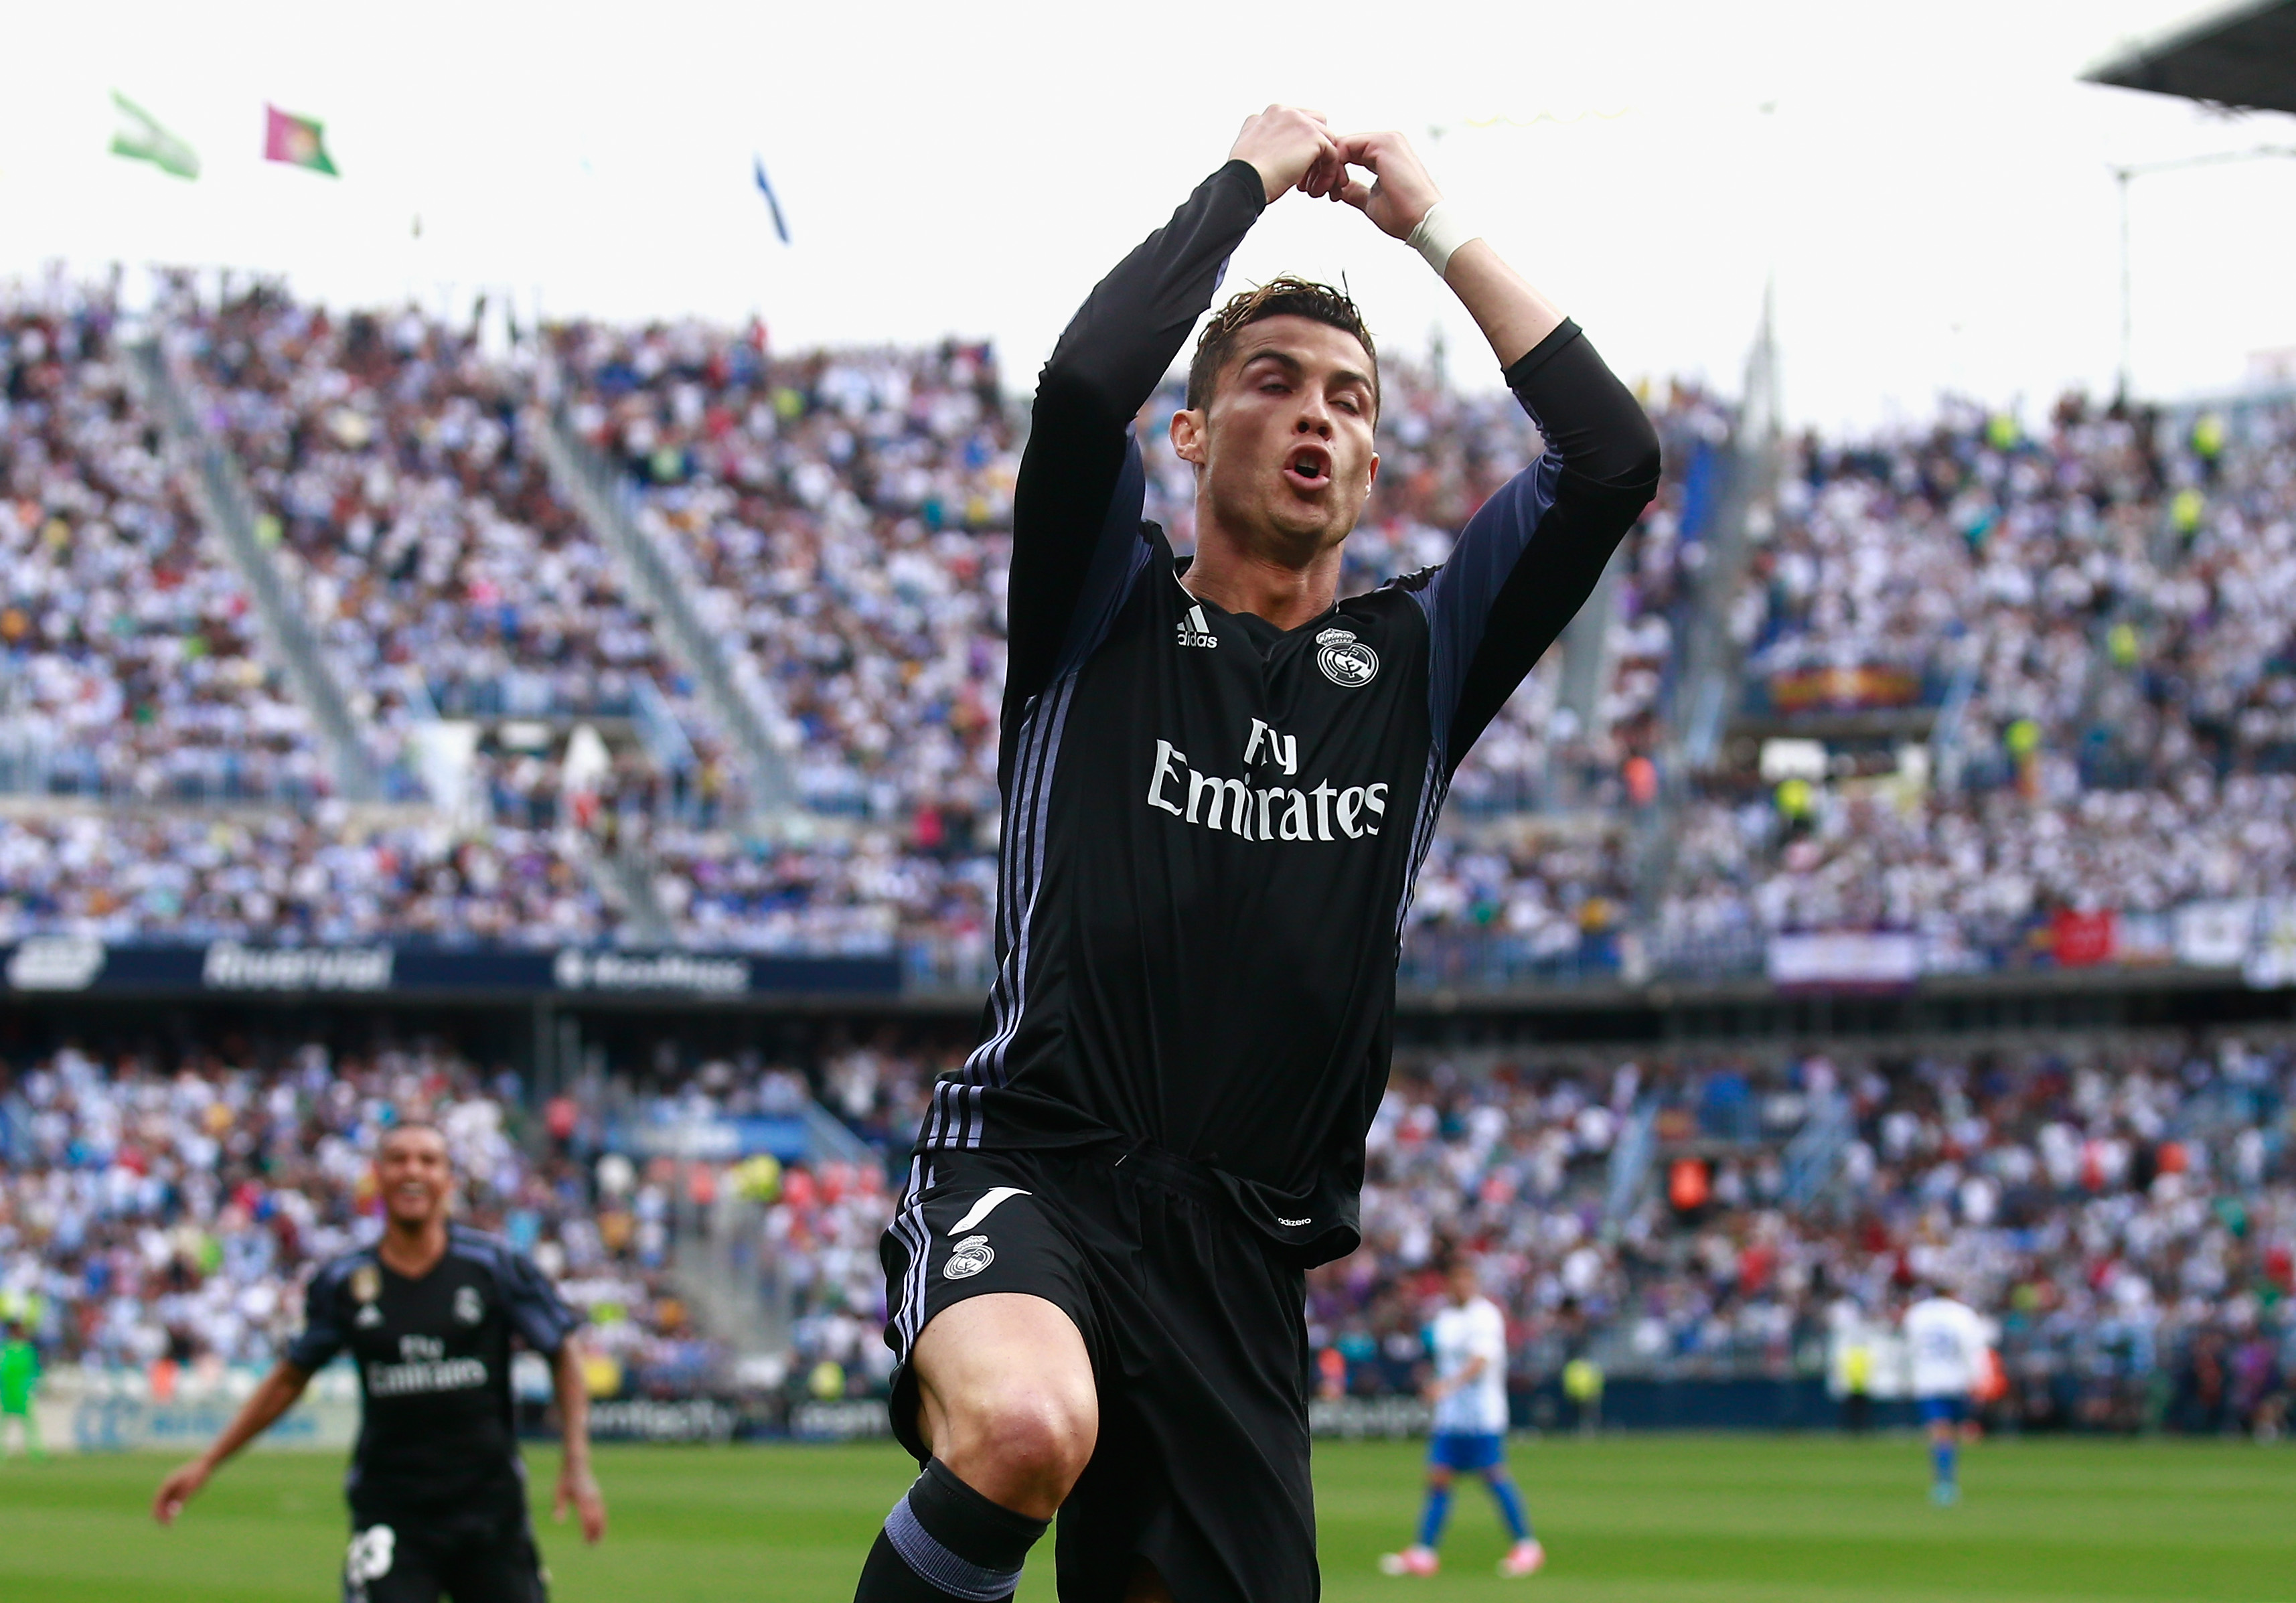 Cristiano Ronaldo beats Lionel Messi to Champions League top scorer award